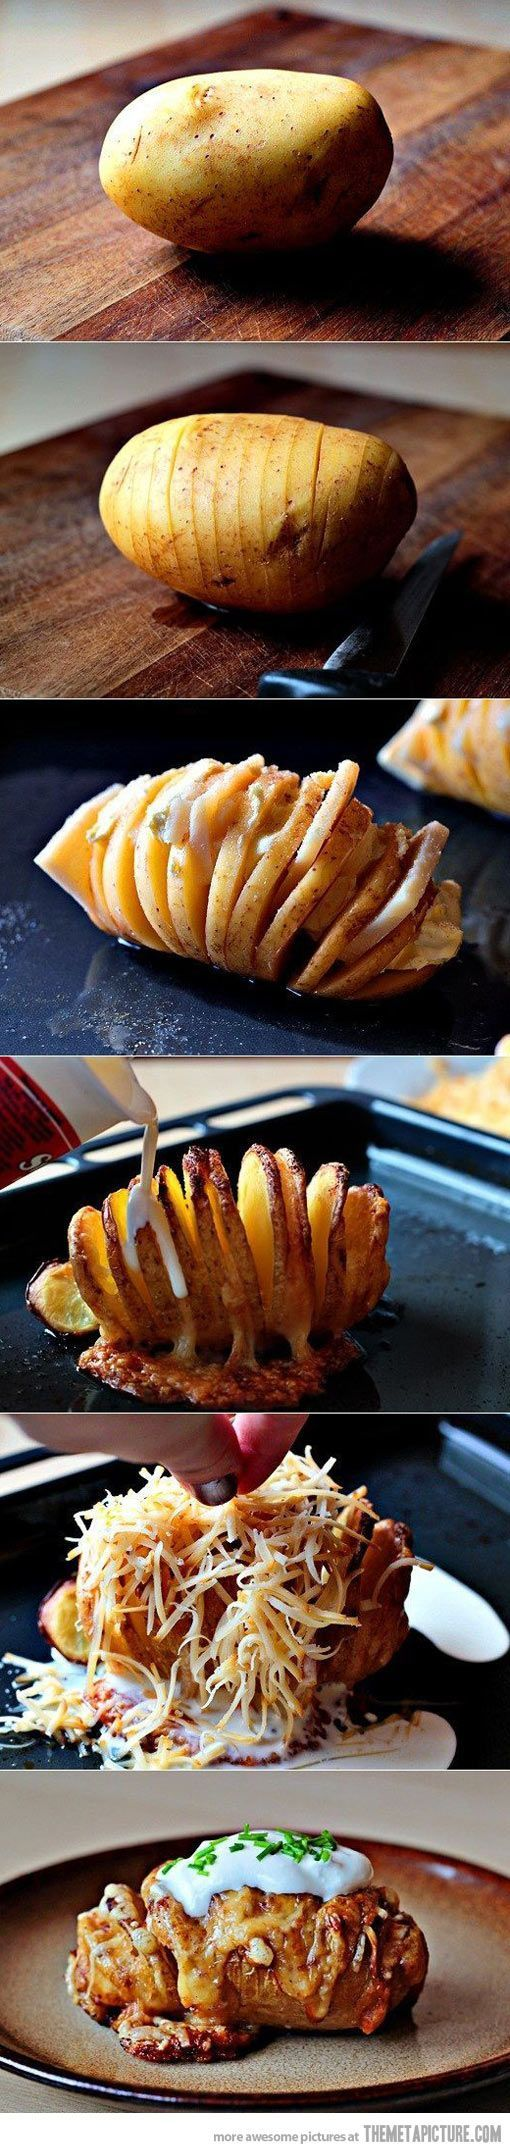 Perfect Baked Potato | 25+ Food Hacks